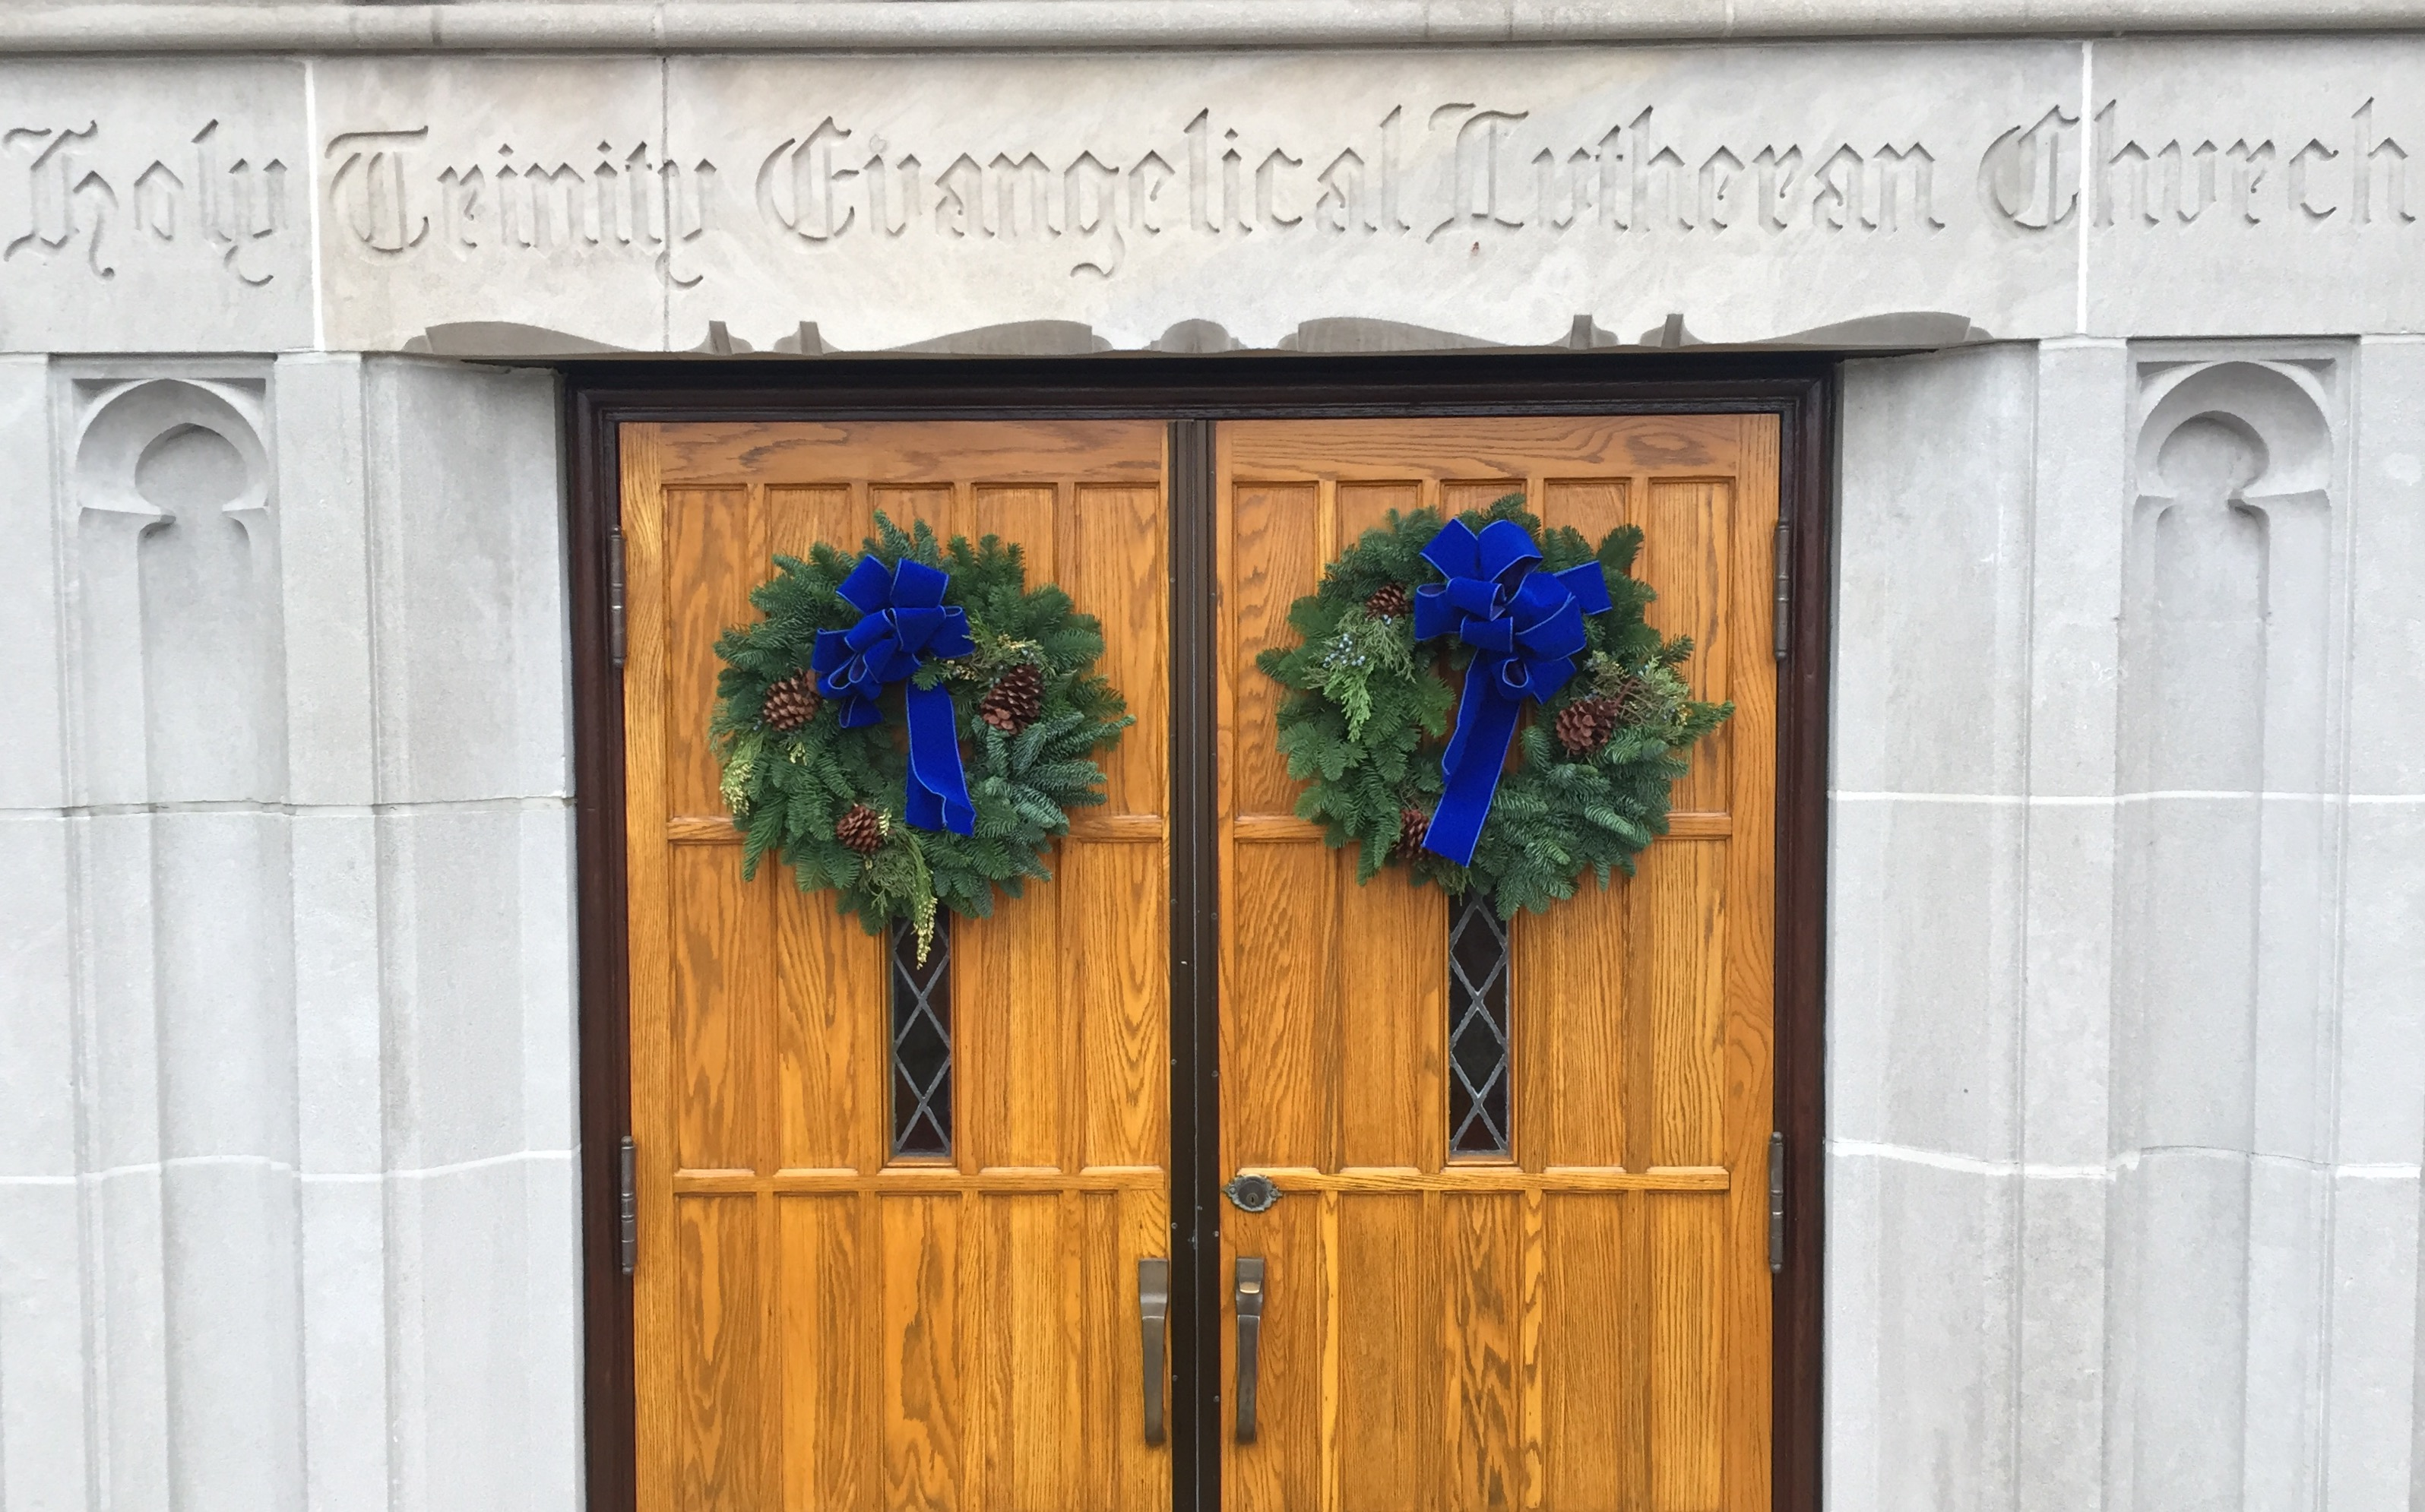 Holy Trinity Lutheran Church | Just another WordPress site